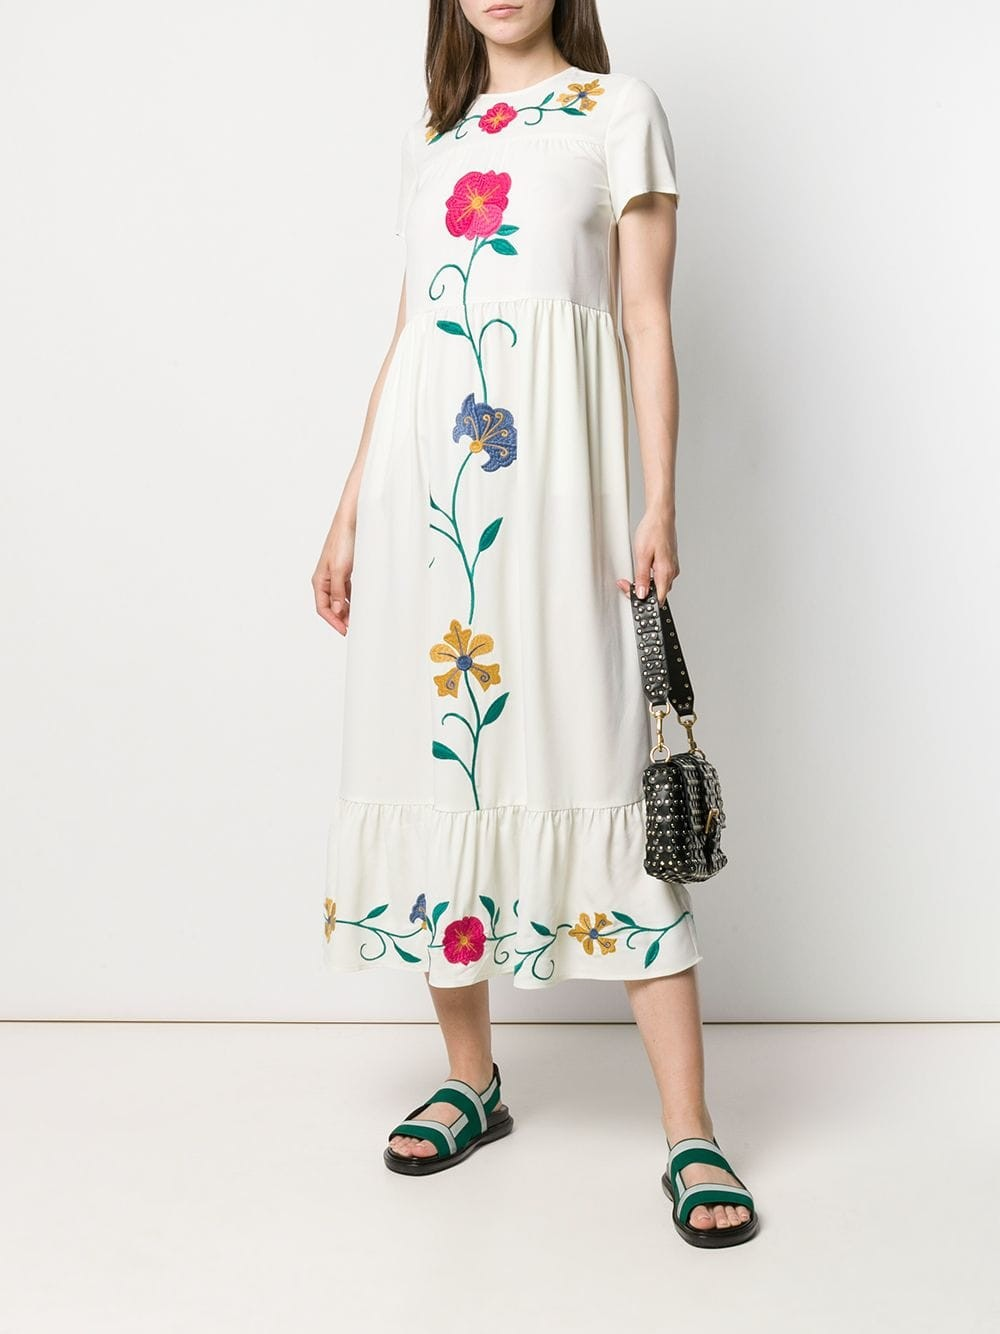 Red Valentino - Floral Embroidery - Dress - Woman